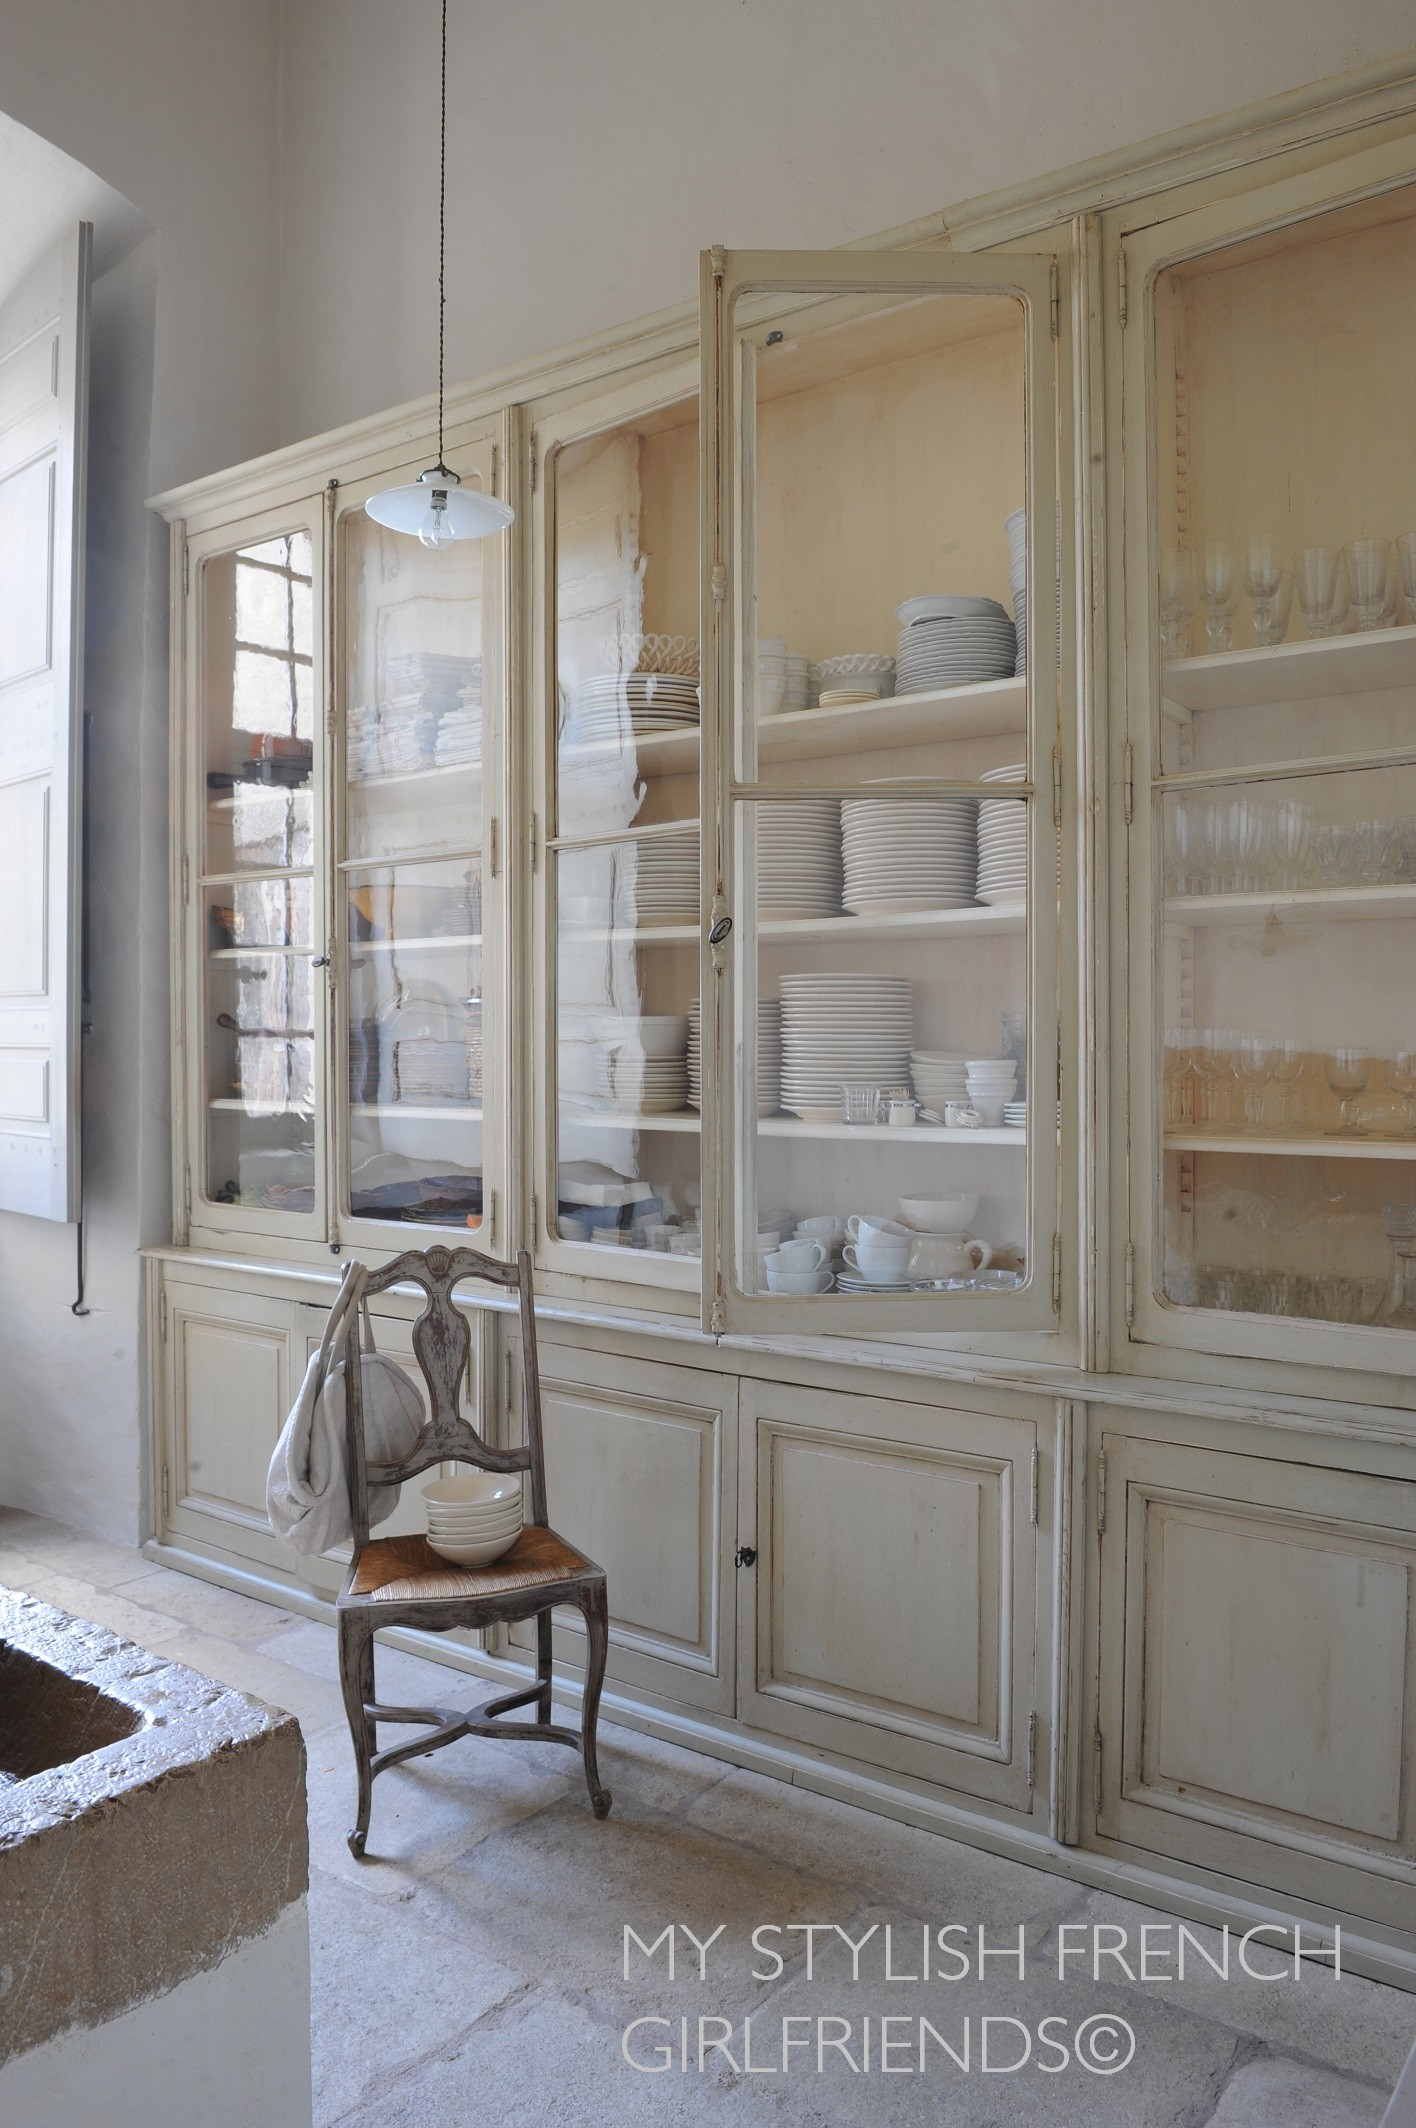 scullery in french chateau de moissac